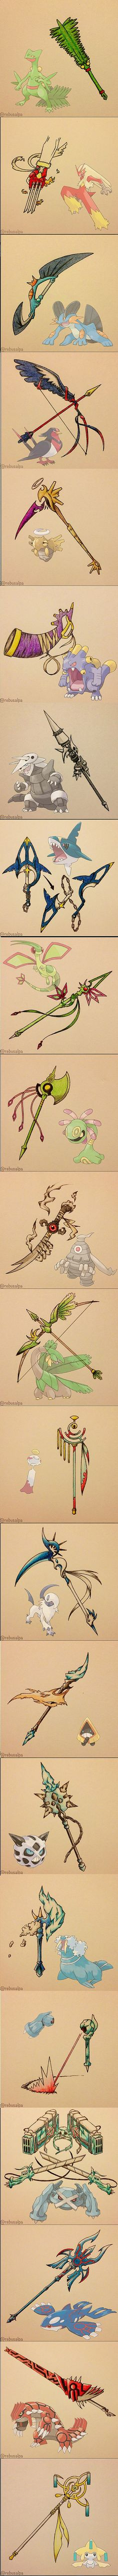 Aggron, Metagross, and Jirachi - some of my fav pokemon, epic weapons Pokemon Weapons